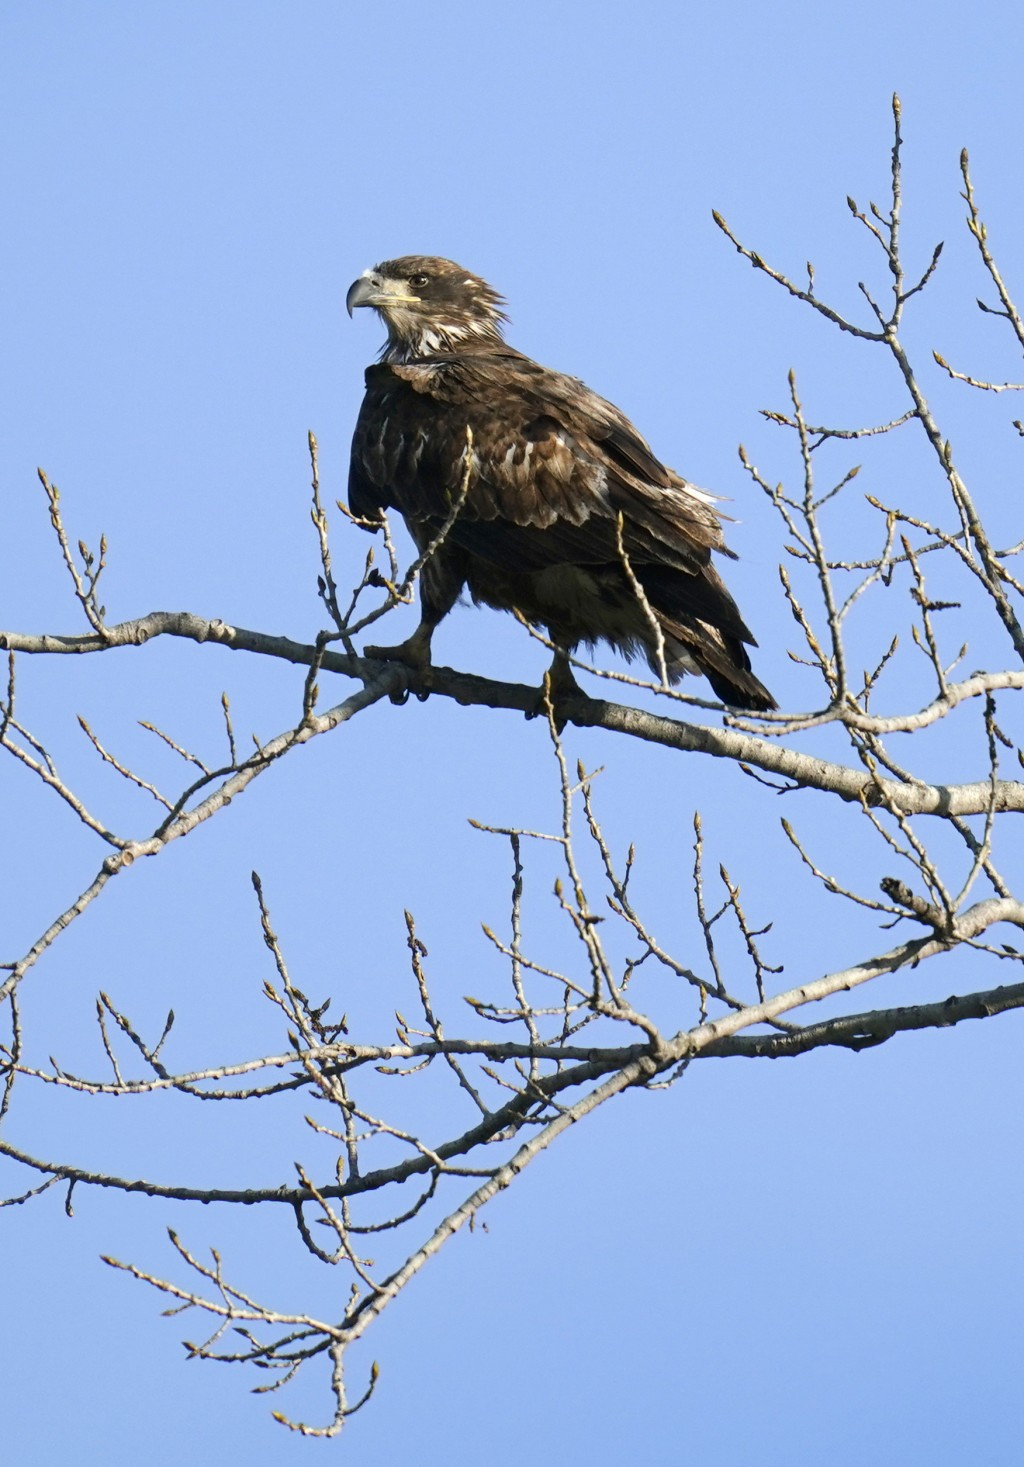 FILE - A juvenile bald eagle sits in a tree overlooking a pond at Water Works Park in Des Moines, Iowa on April 12, 2021. The National Audubon Society...